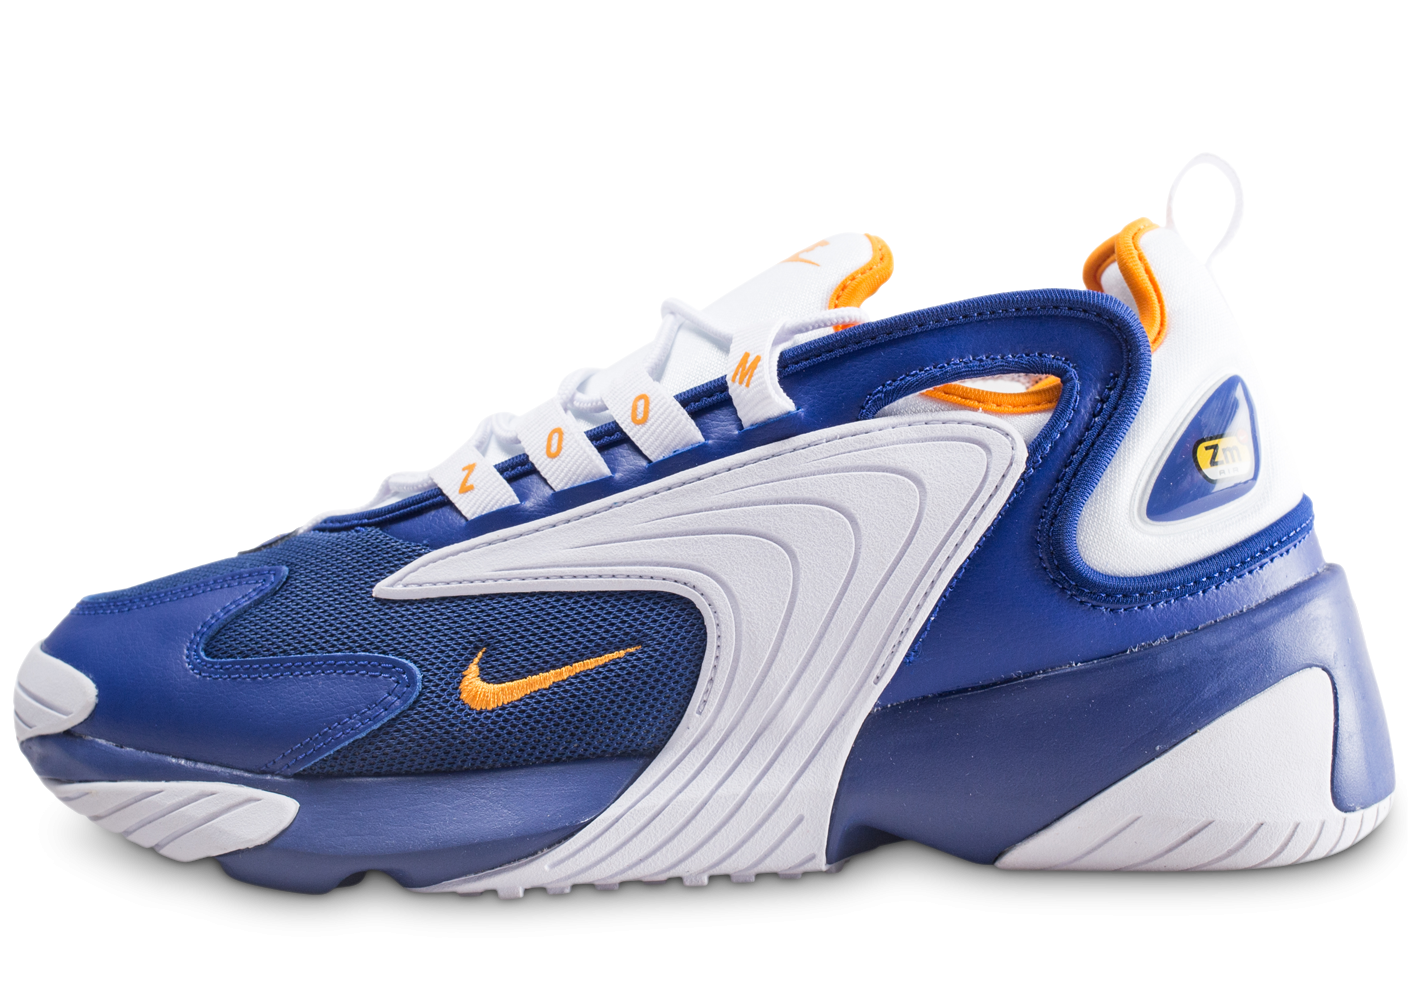 Nike Zoom 2K bleu et orange